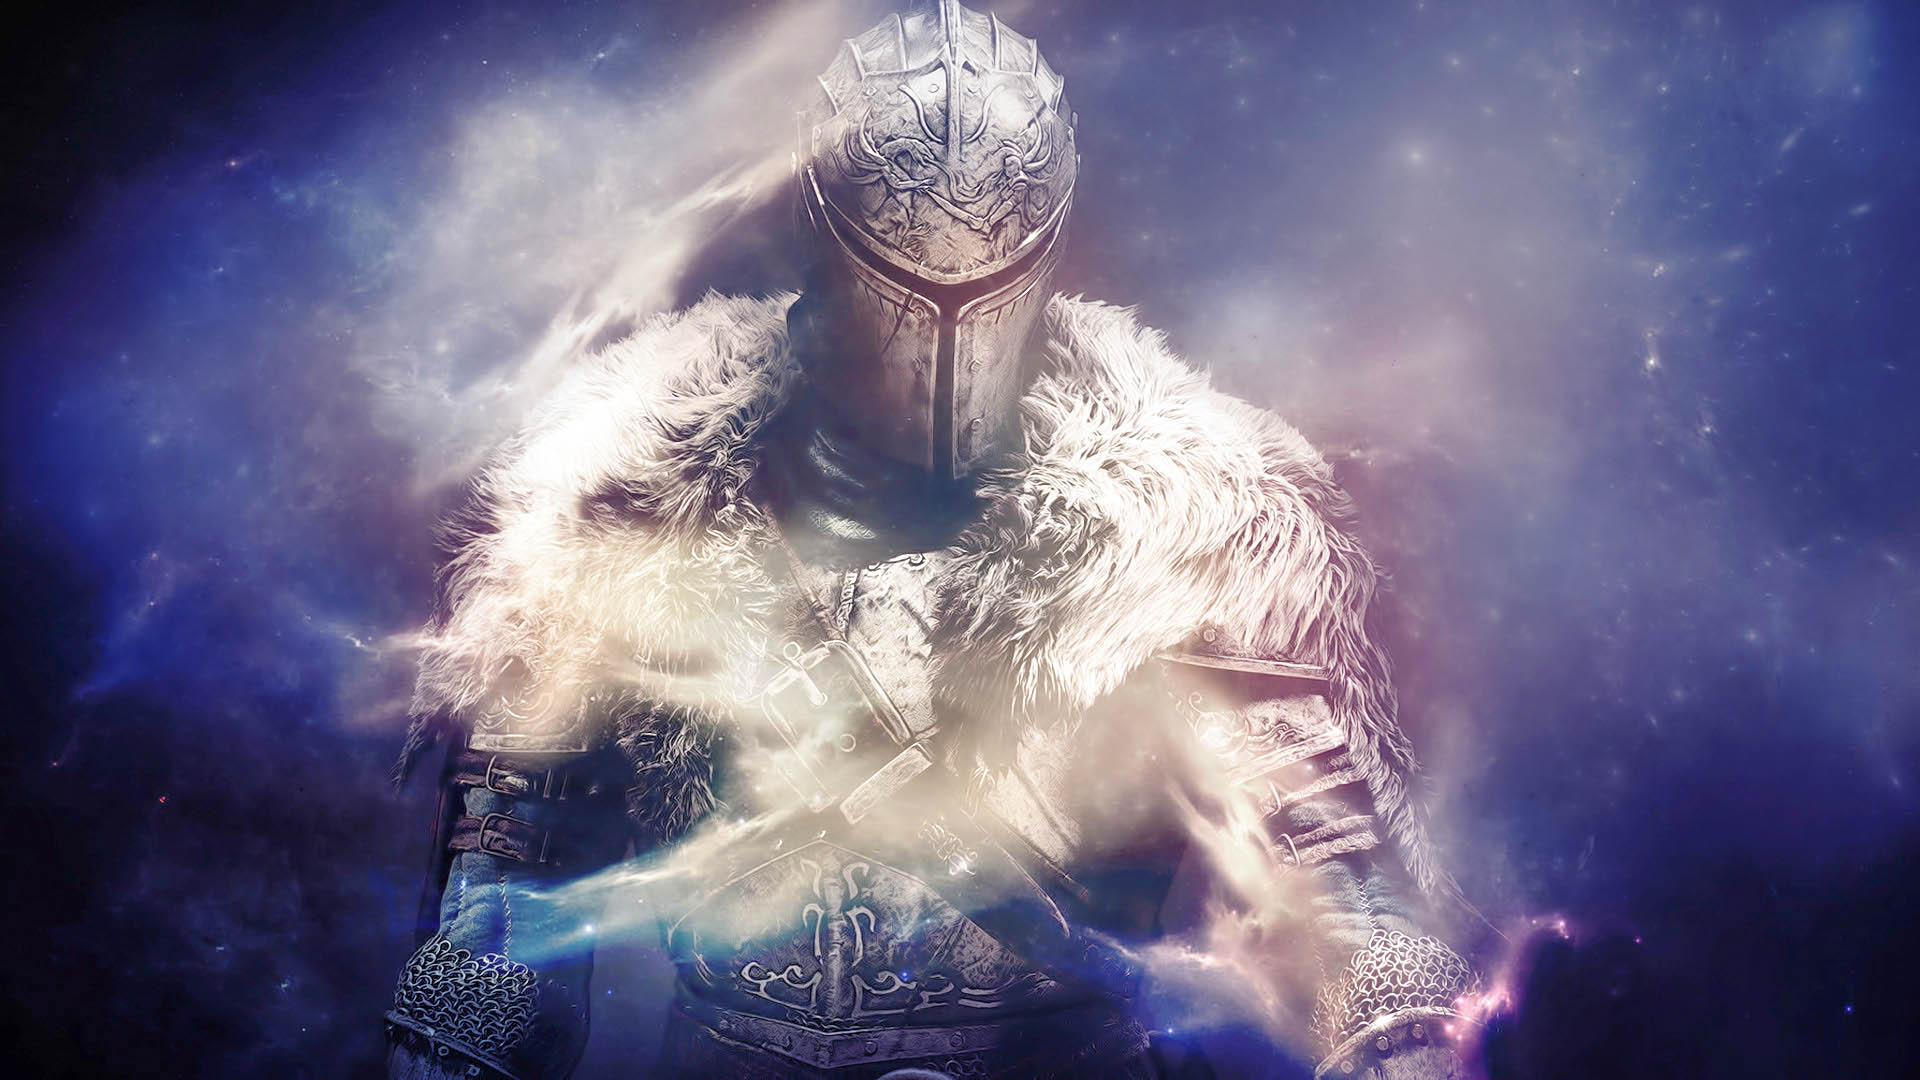 Dark Souls Ii Out Stunning Wallpapers High Quality All